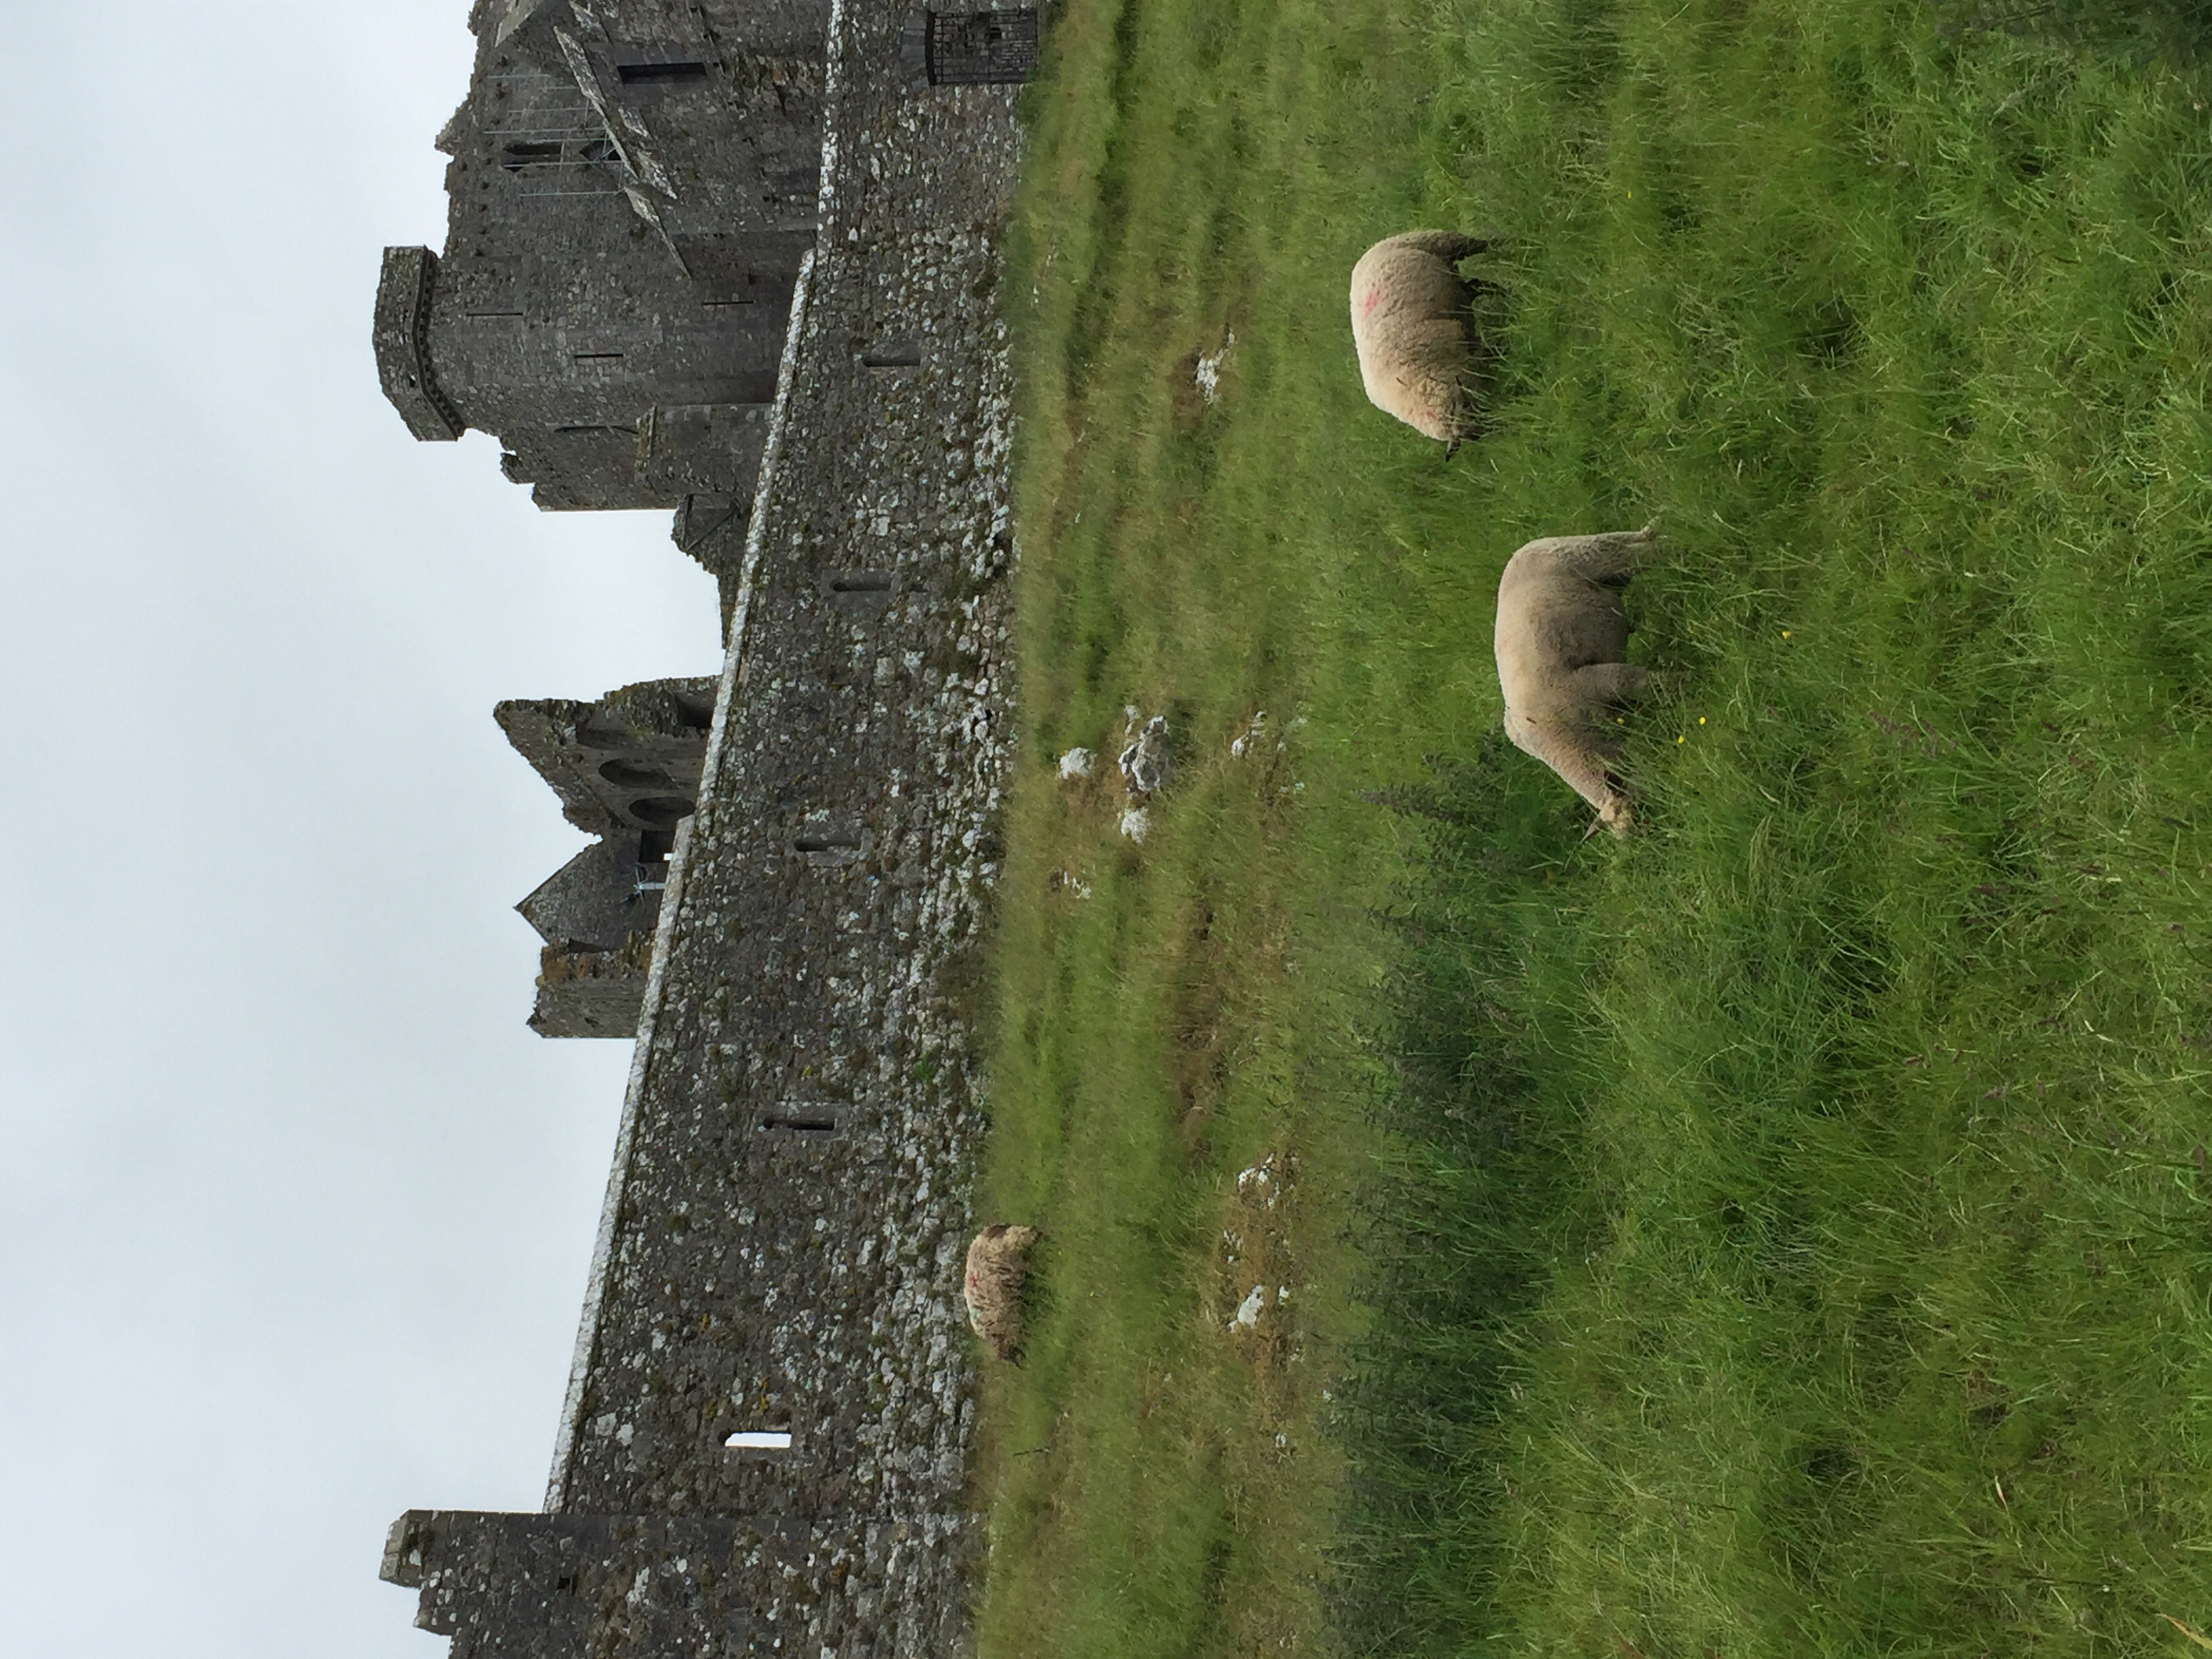 Sheep munching away, not noticing the Rock...